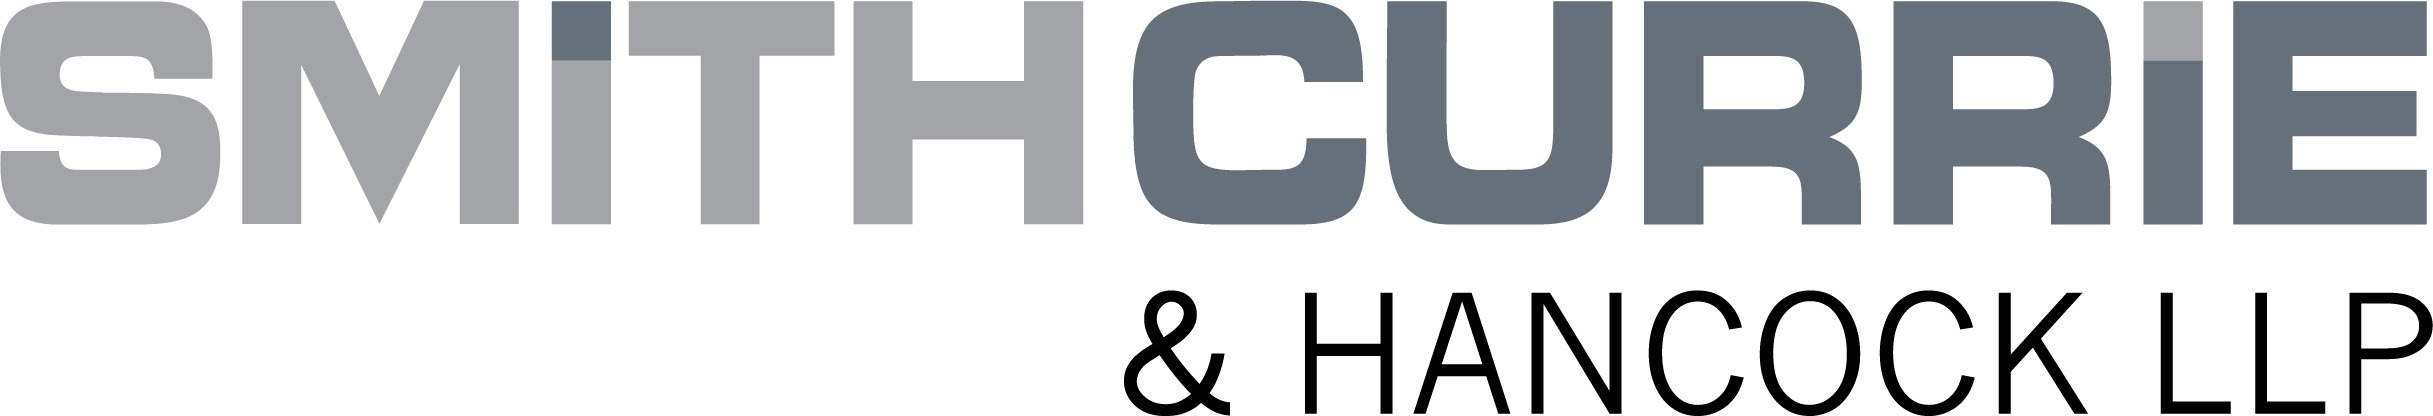 Image for Smith, Currie & Hancock LLP